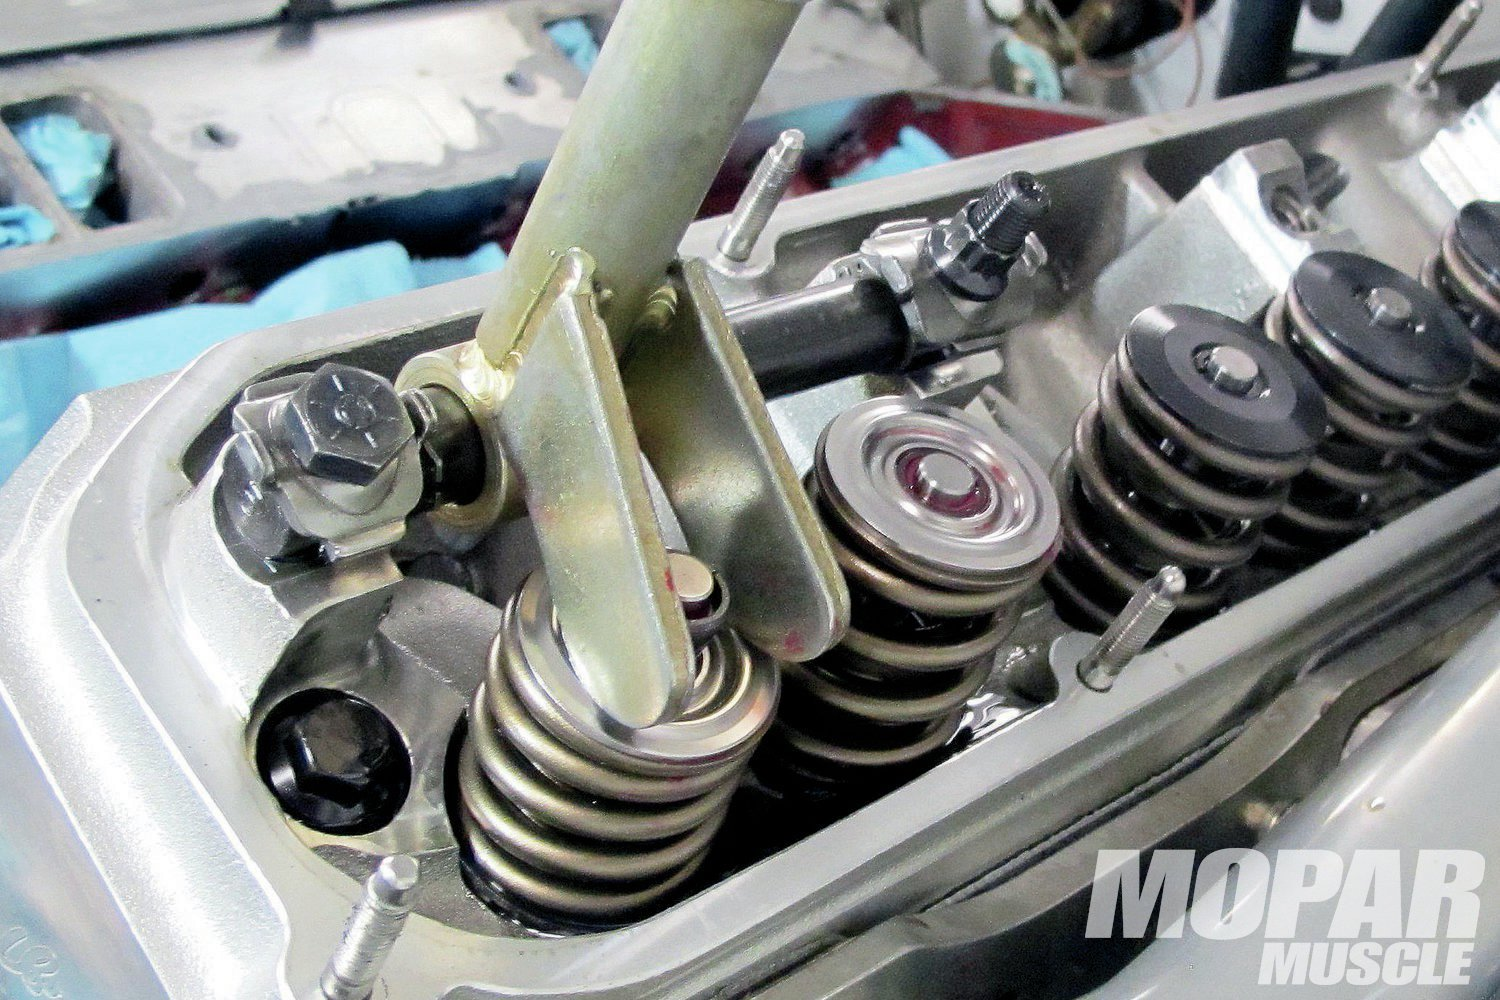 05 This type of swap requires also changing the valve springs. The new springs are set with 148 pounds at 1.900-inch seat load, and 456 pounds at 1.250-inch open load pressure, and were teamed with a lightweight tool-steel retainer for less weight at the valve tip for a faster revving engine and less chance of valve float (bounce). Comp's Extreme Energy and Magnum series solid street-roller cams use valve springs with reduced spring pressure for less valvetrain wear and valve lash change.